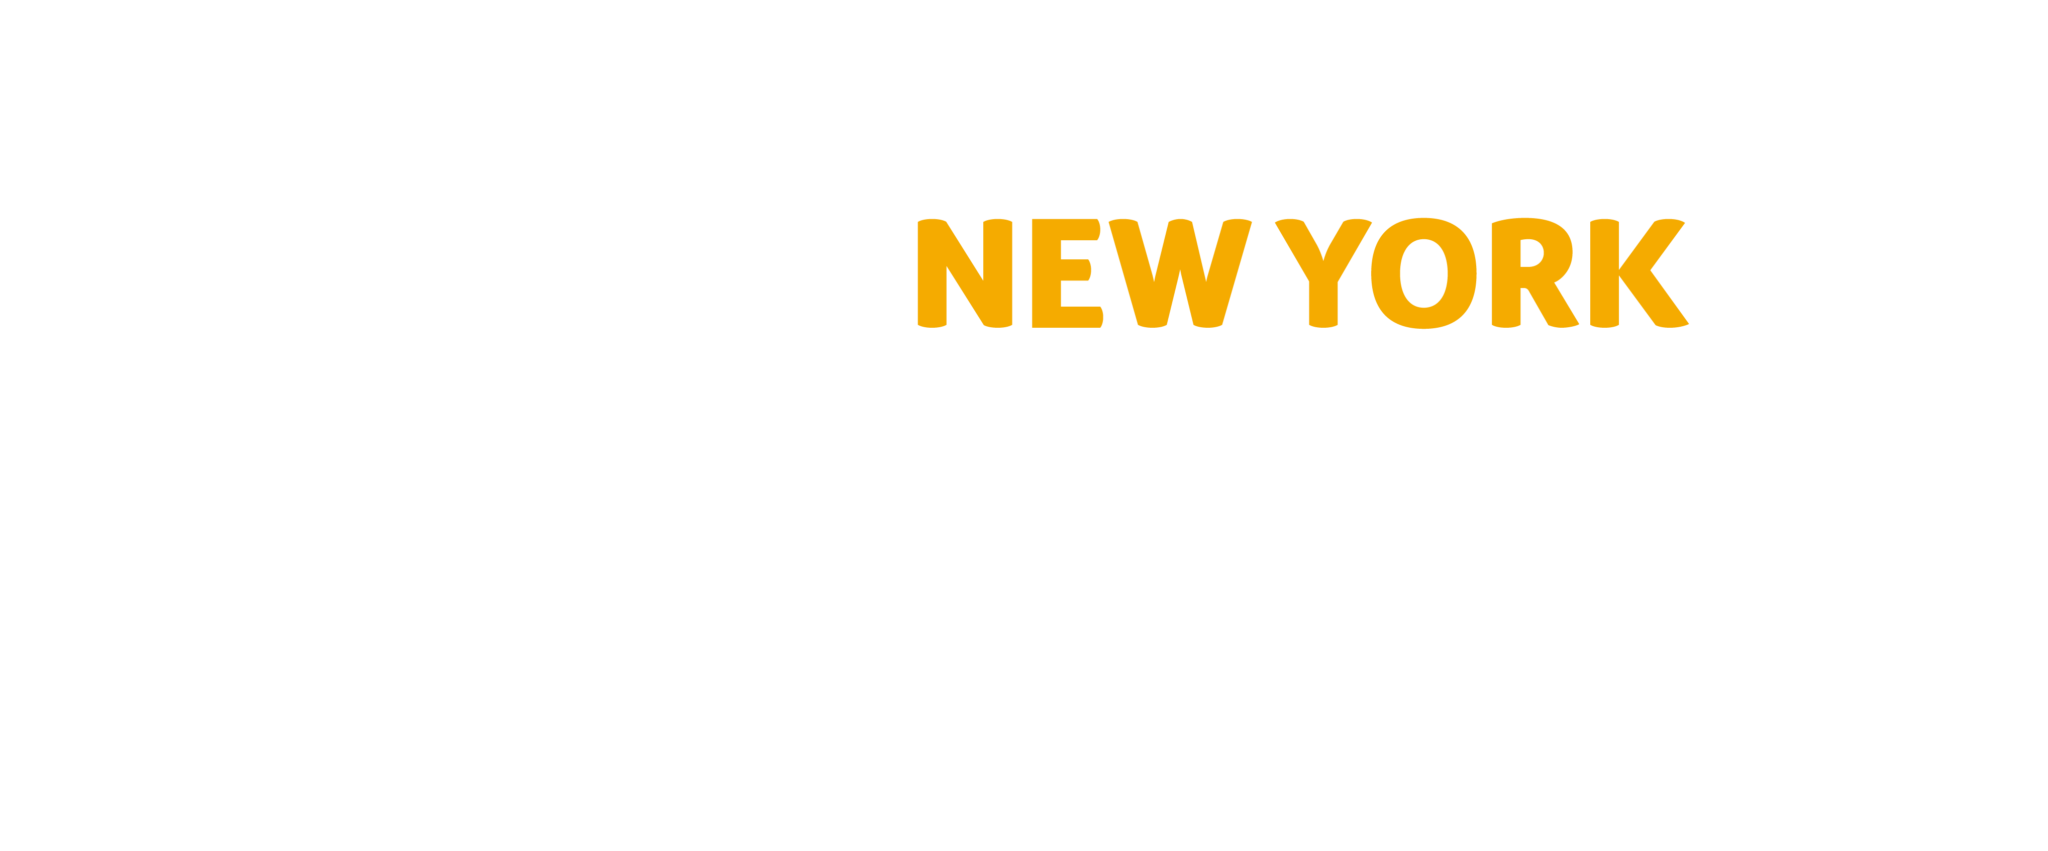 NYS Licensed Homecare Agency